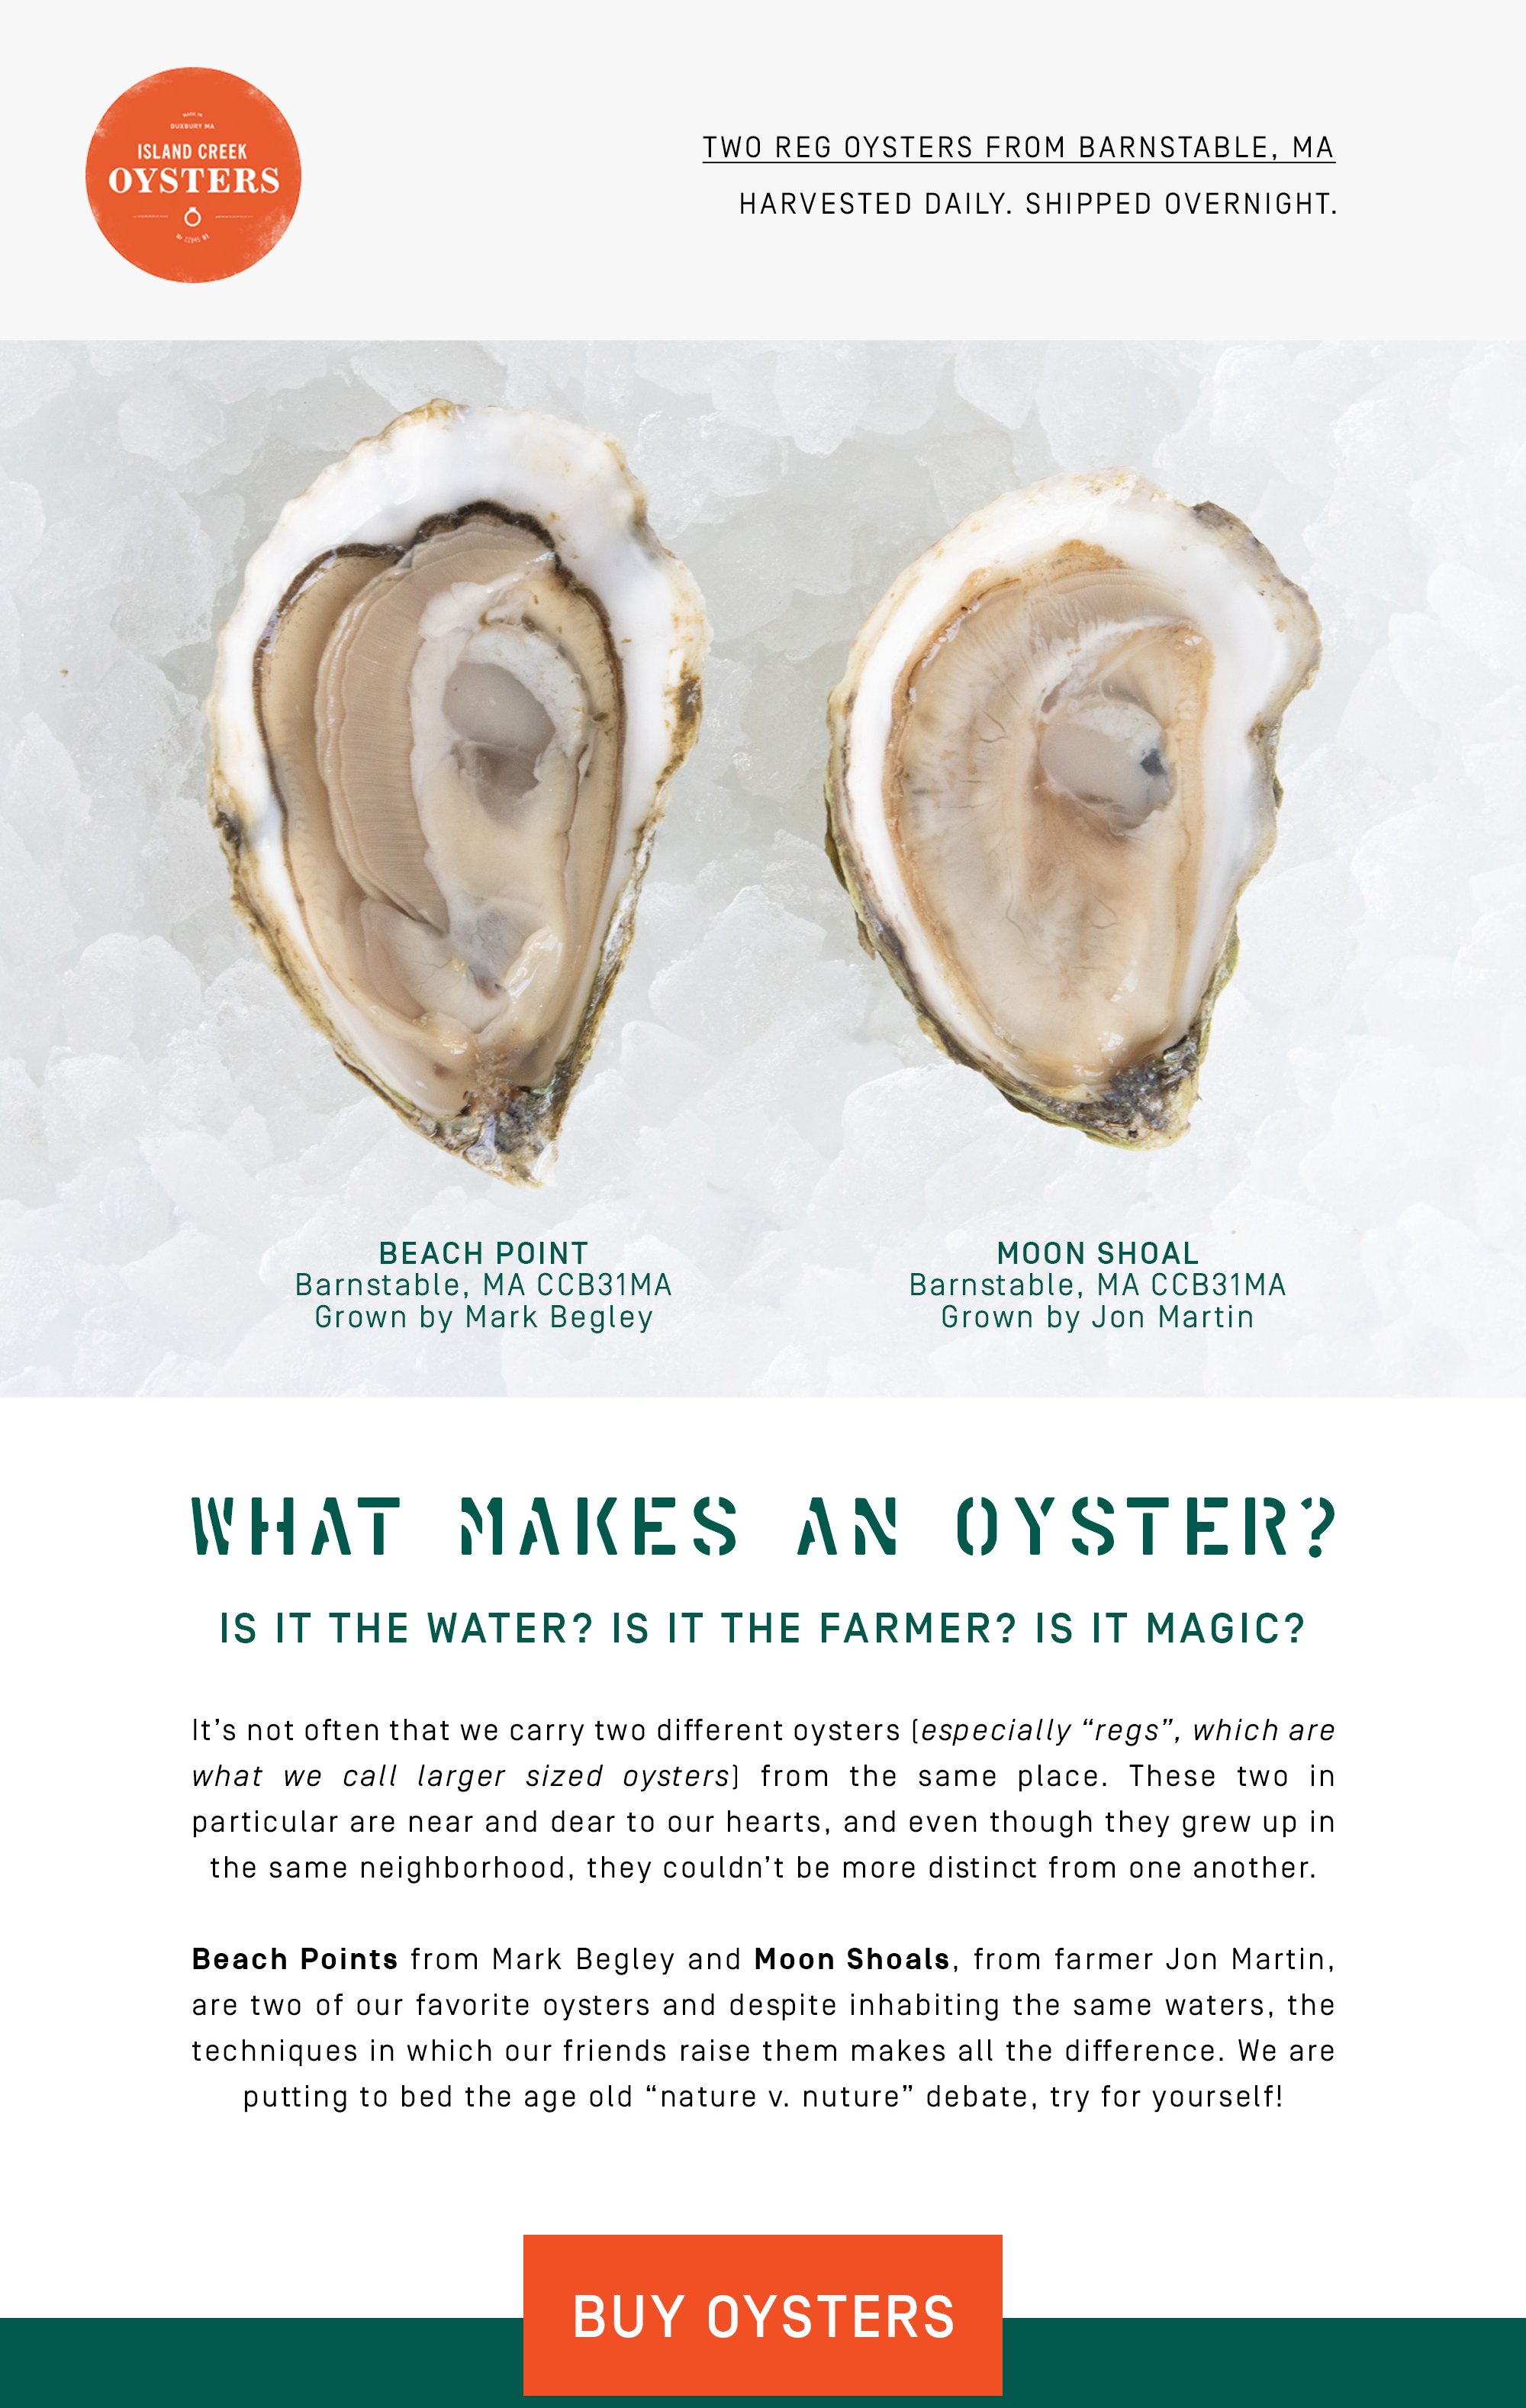 Two Reg Oysters from Barnstable, MA. Moon Shoals from Jon Martin and Beach Points from Mark Begley.